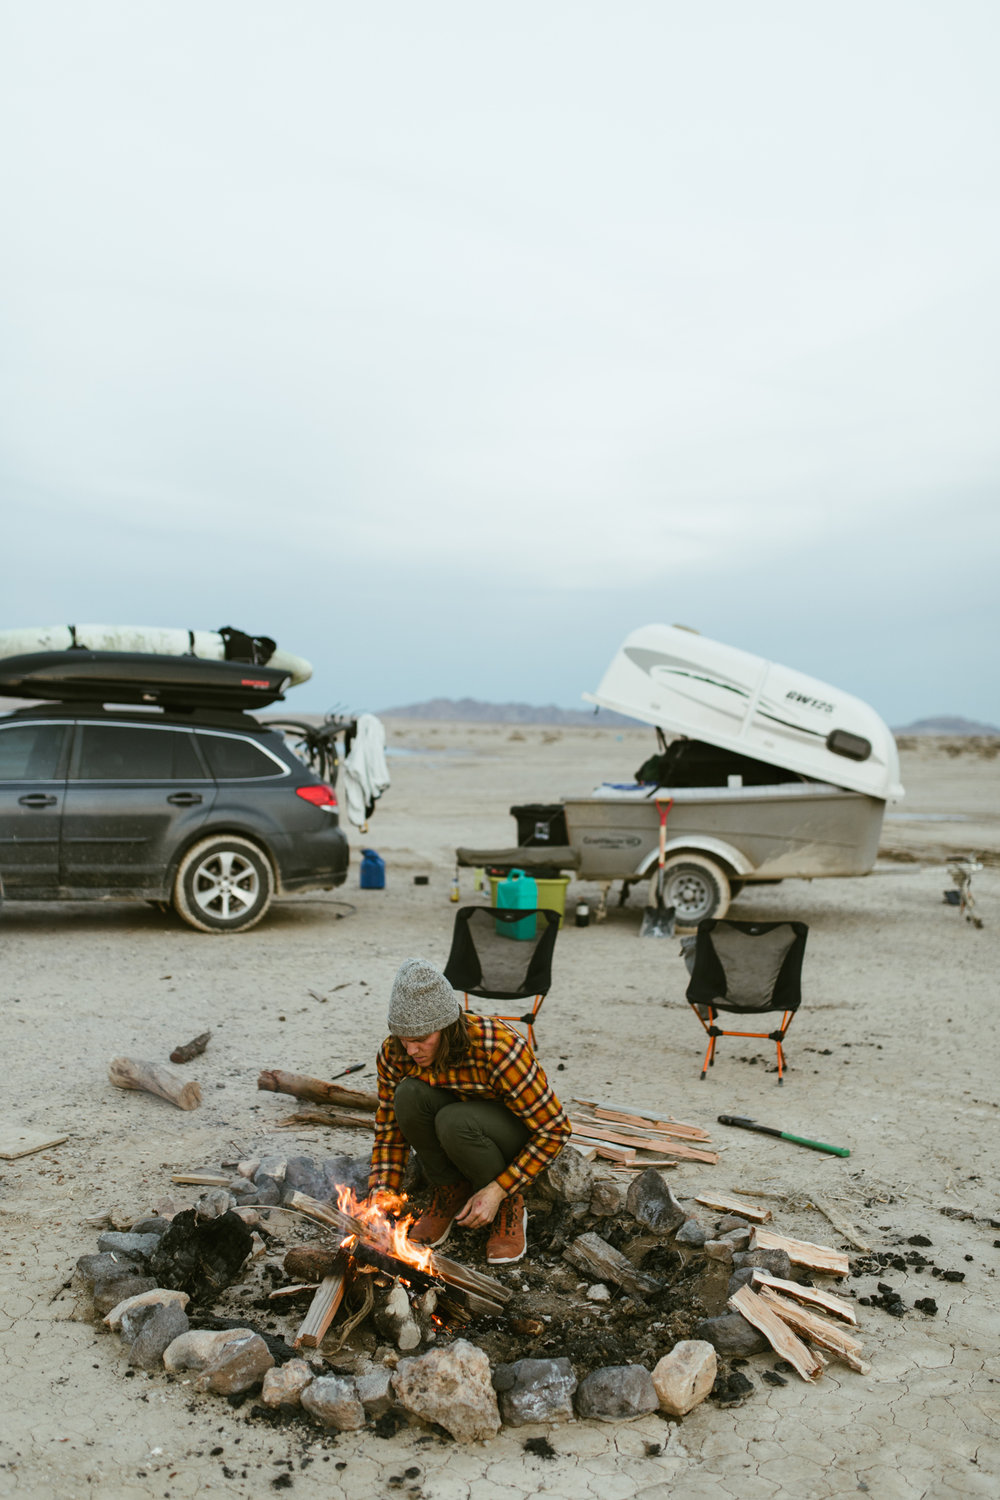 camping in california | utah and california adventure elopement photographers | the hearnes adventure photography | www.thehearnes.com